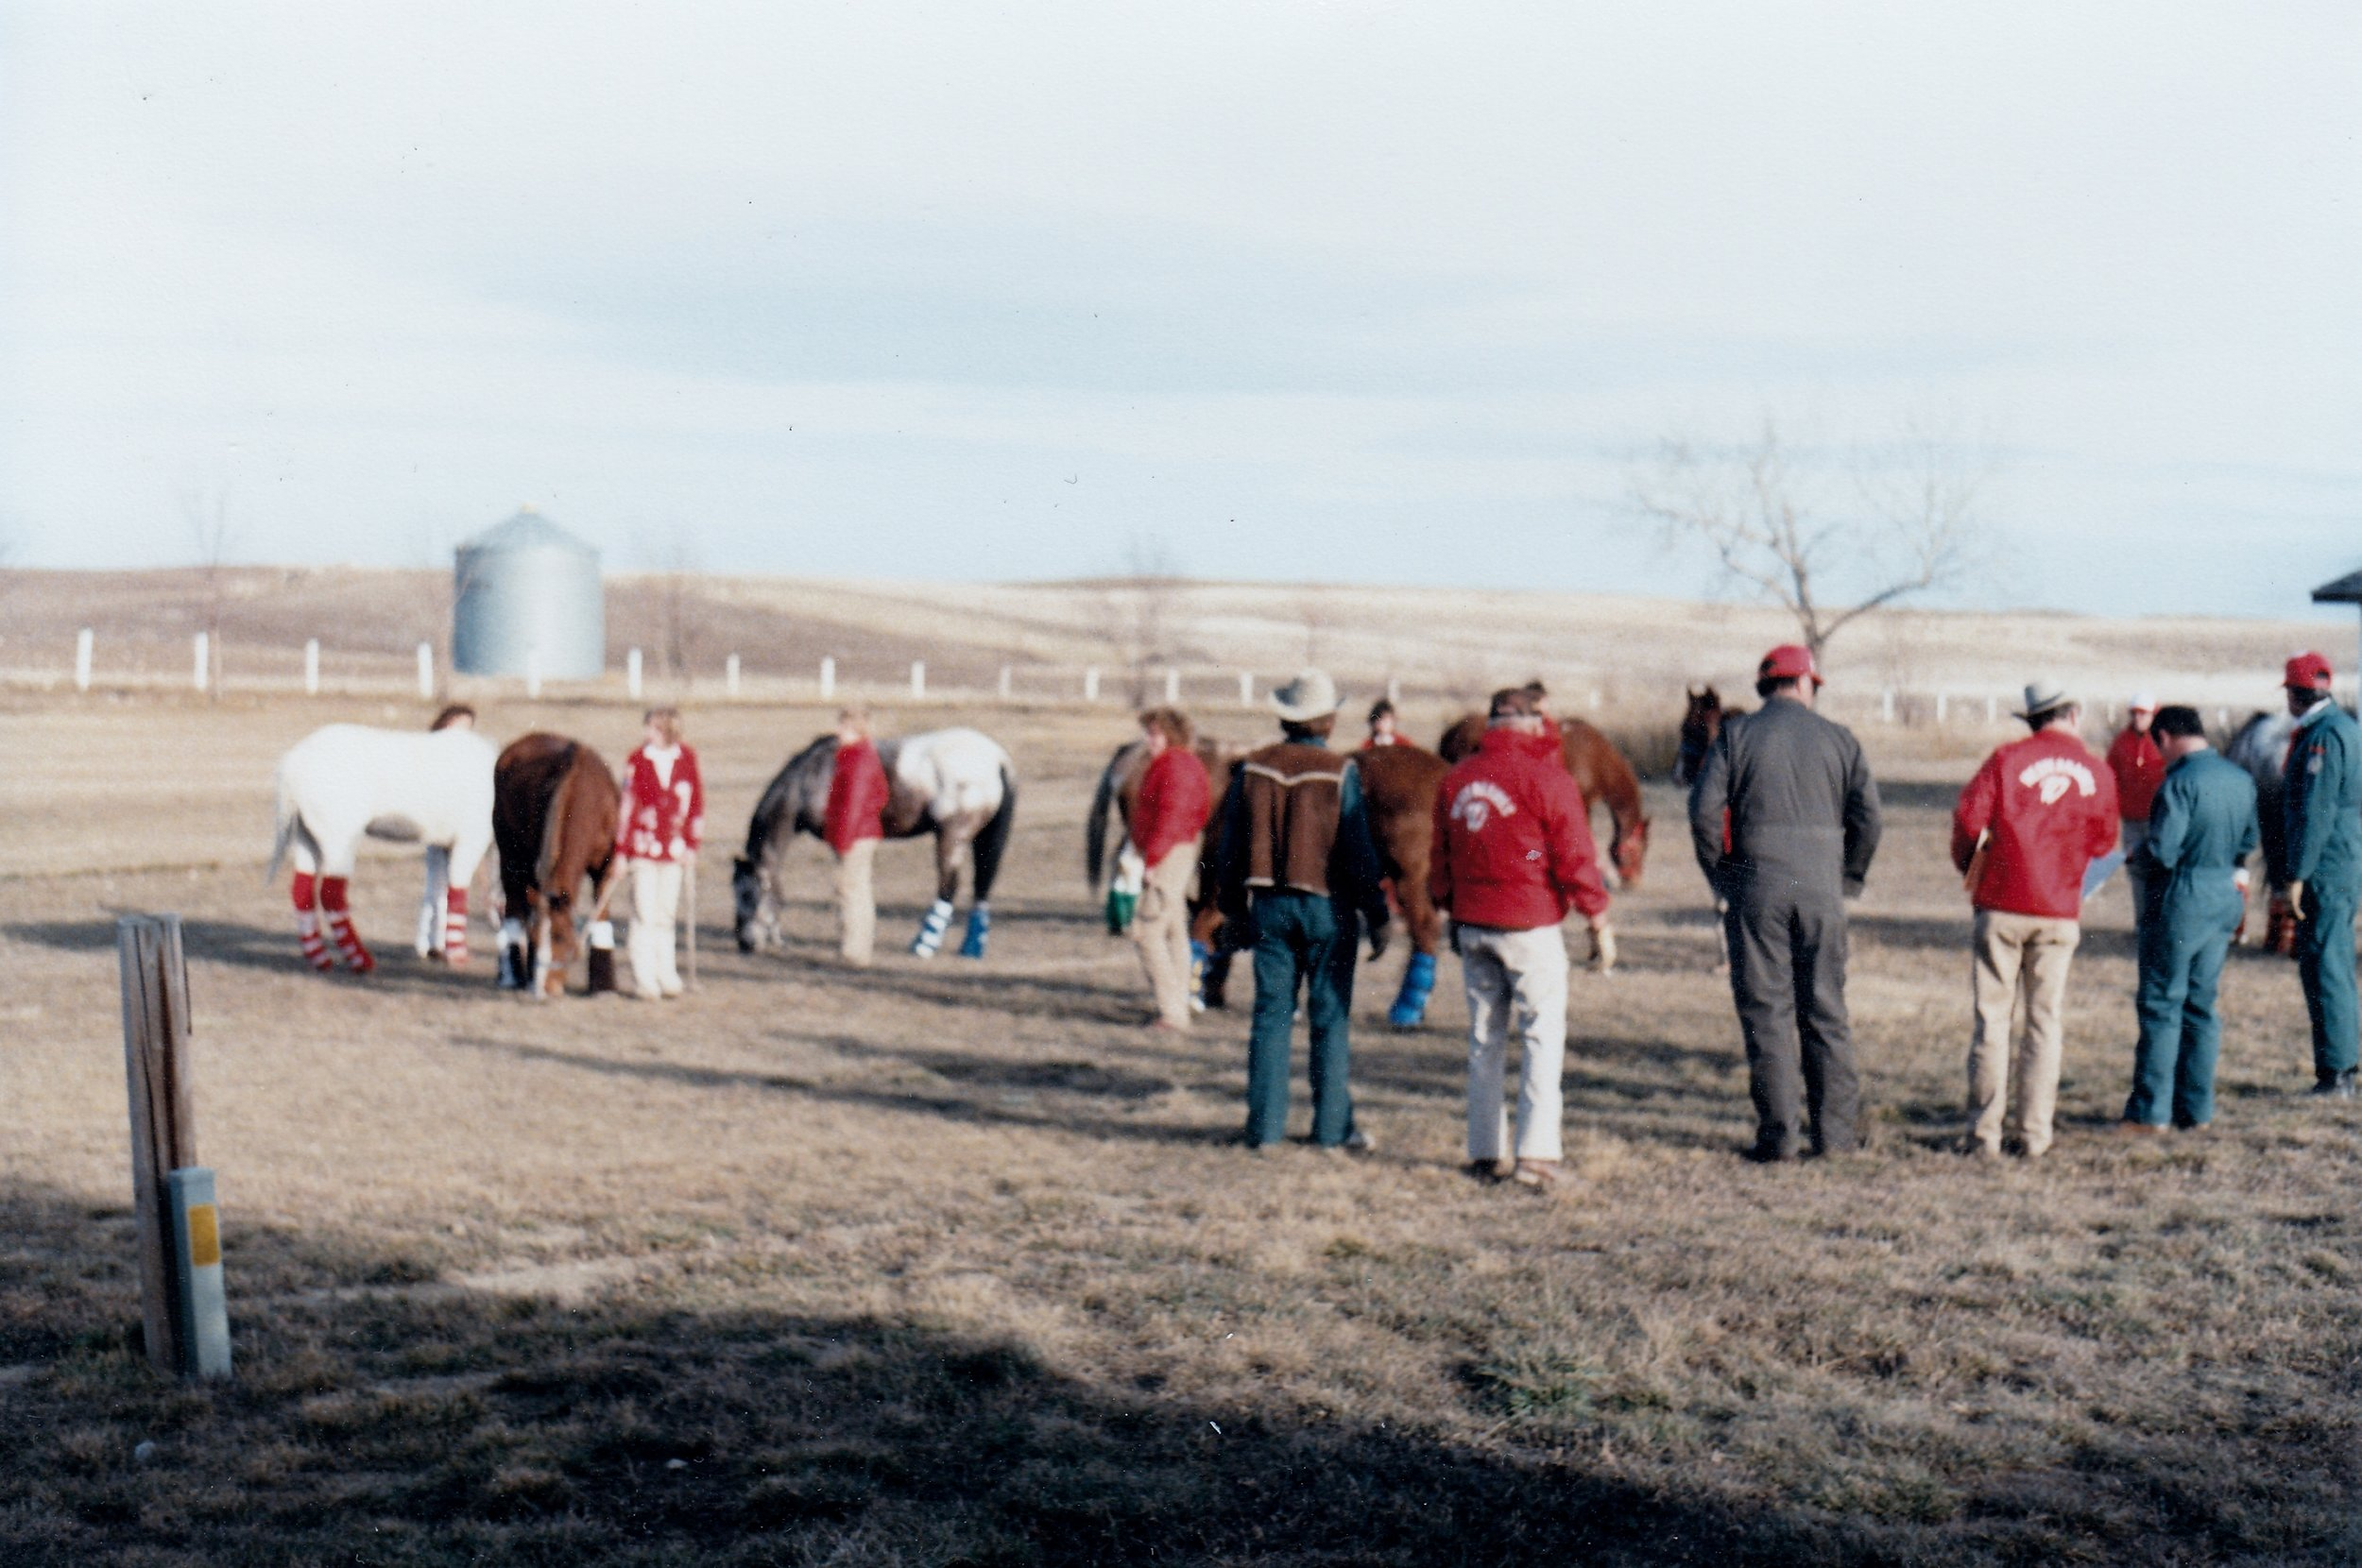 Westerniares stop in  Sheridan, Wyoming  for the night to allow the horses stretch their legs. Alumni Dave and Debbie Metzler were former residents of Sheridan – they were instrumental in arranging for lodging, food, and accommodations for everyone.